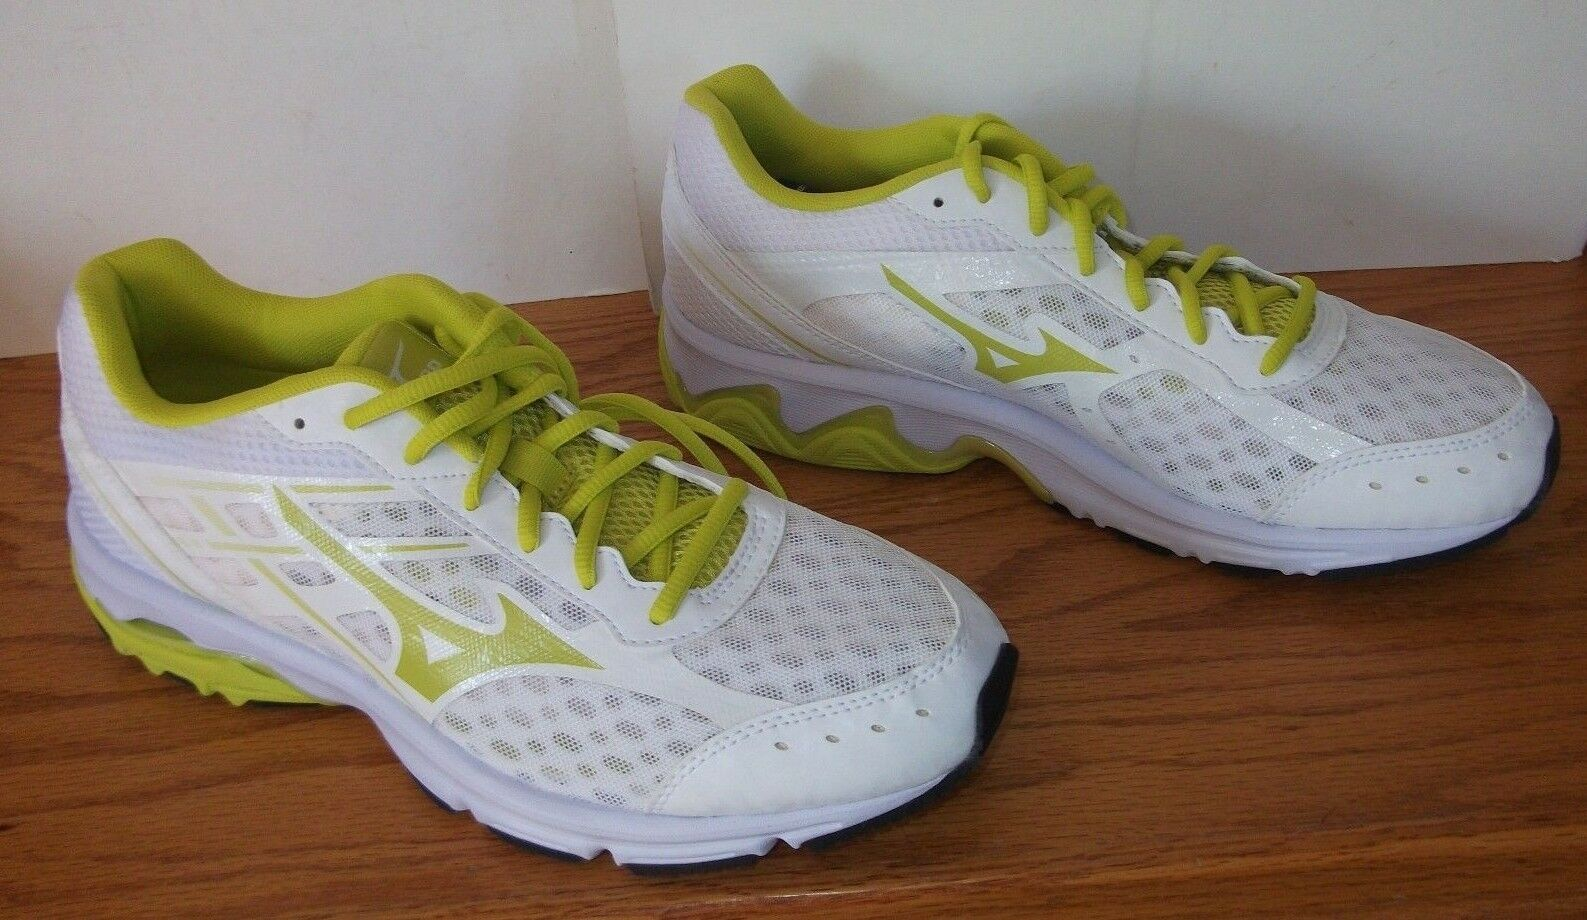 Mizuno X-10 Athletic Schuhes Damenschuhe 11 Safety Green/Yellow Run Training Sneakers